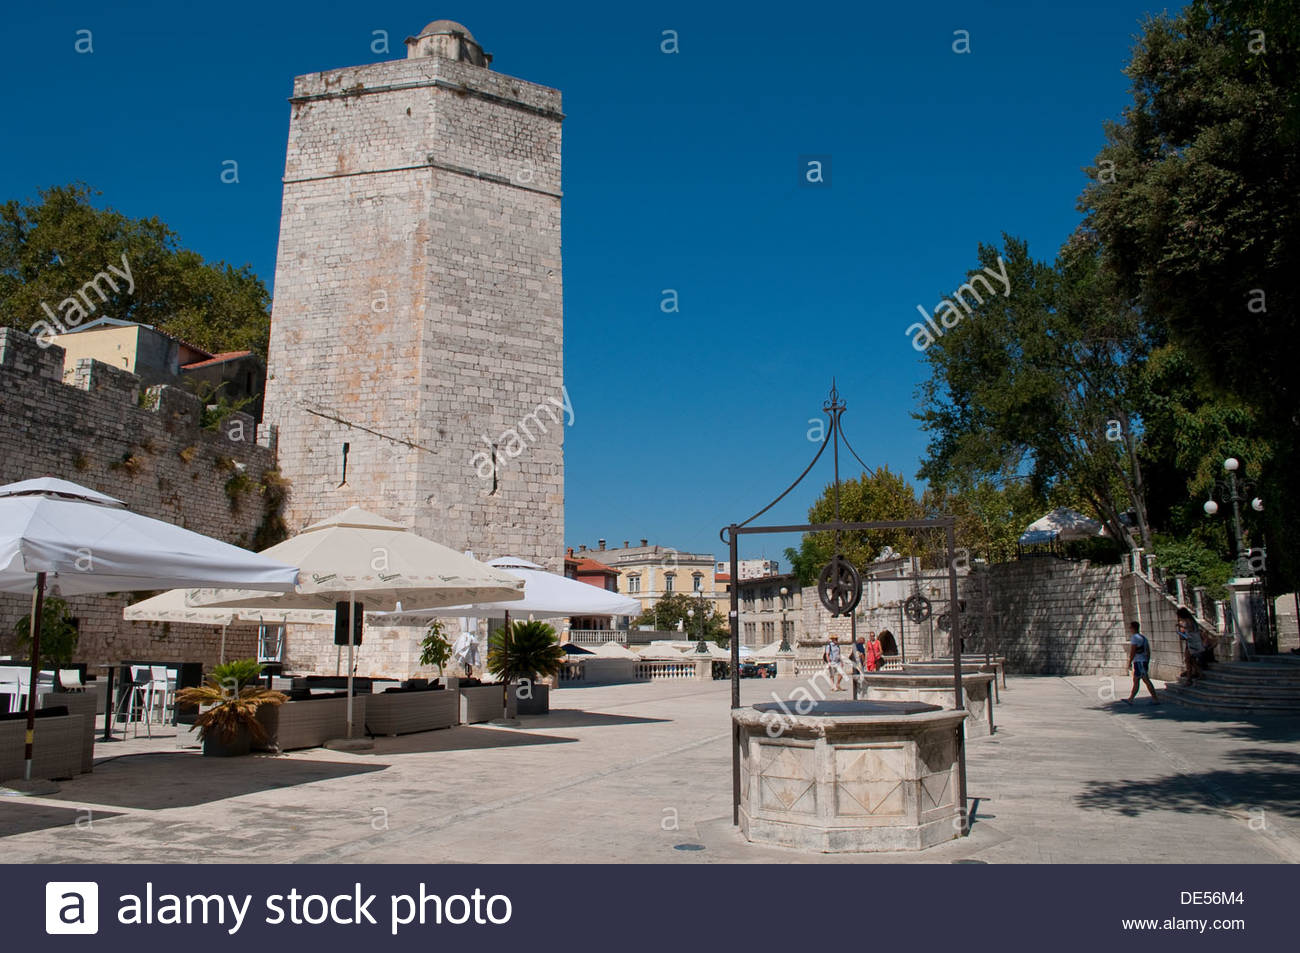 Five Wells Square and Captain's Tower, Zadar, Croatia - Stock Image